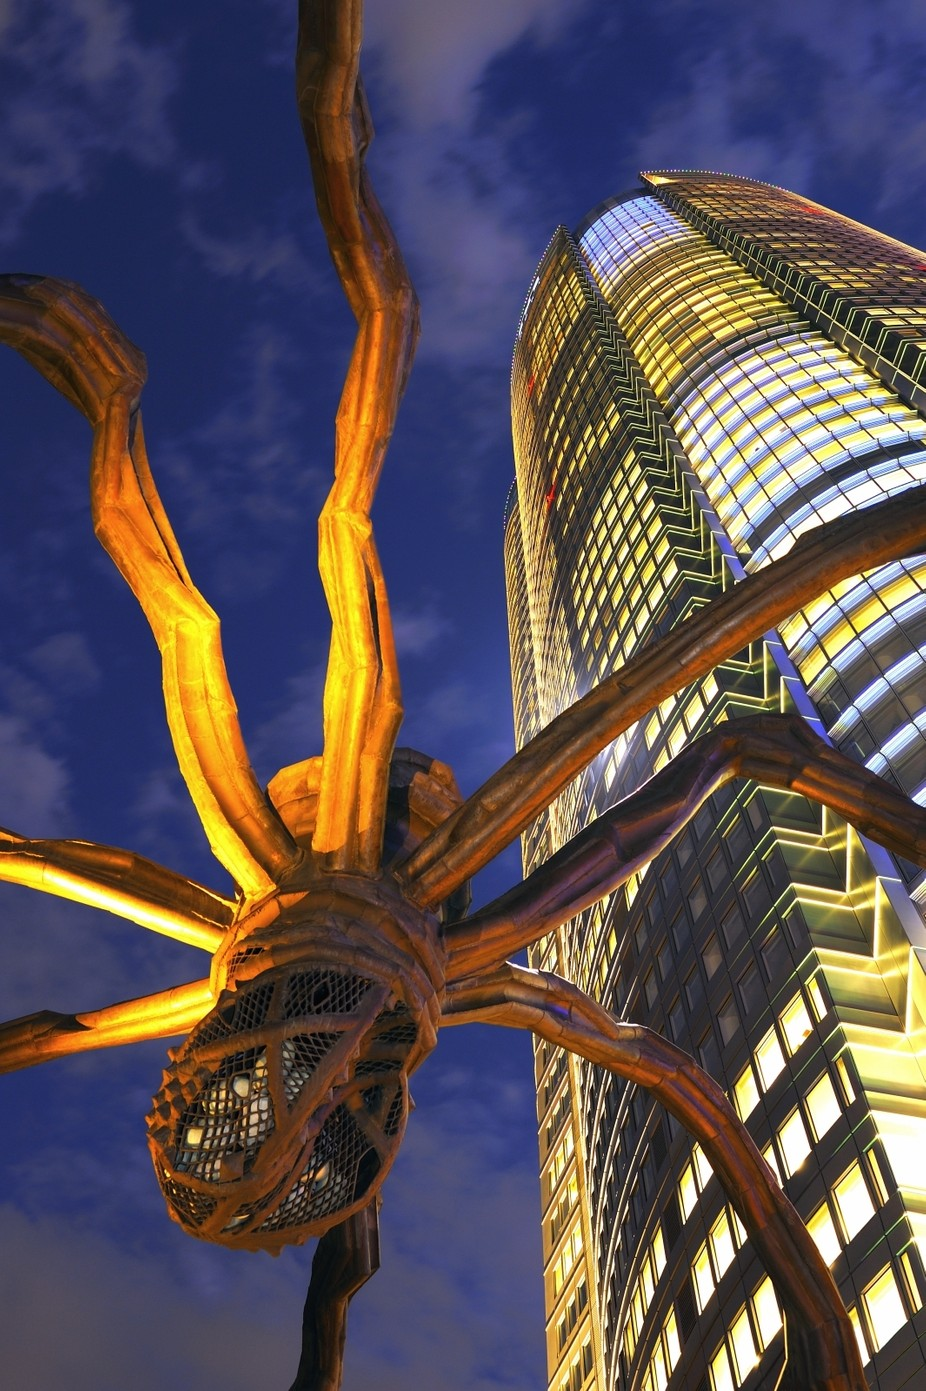 The spider sculpture by lekahuie - The Magic Of Japan Photo Contest